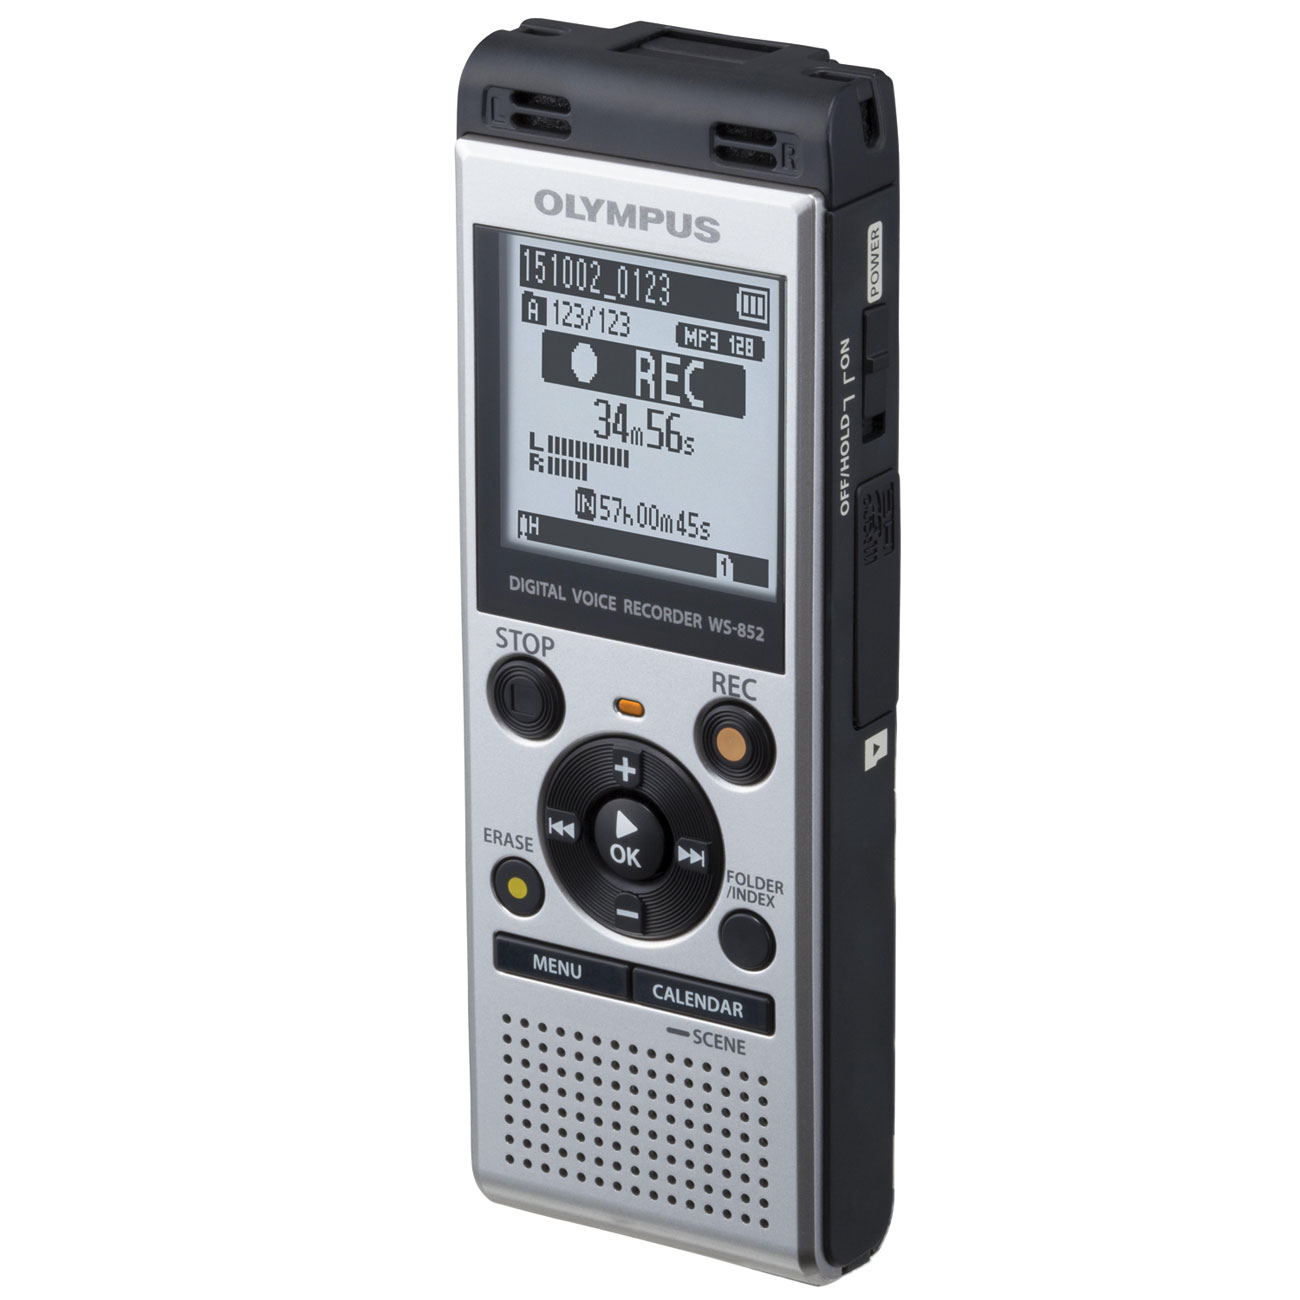 Olympus Digital Voice-MP3-WMA Recorder-Player- 2GB